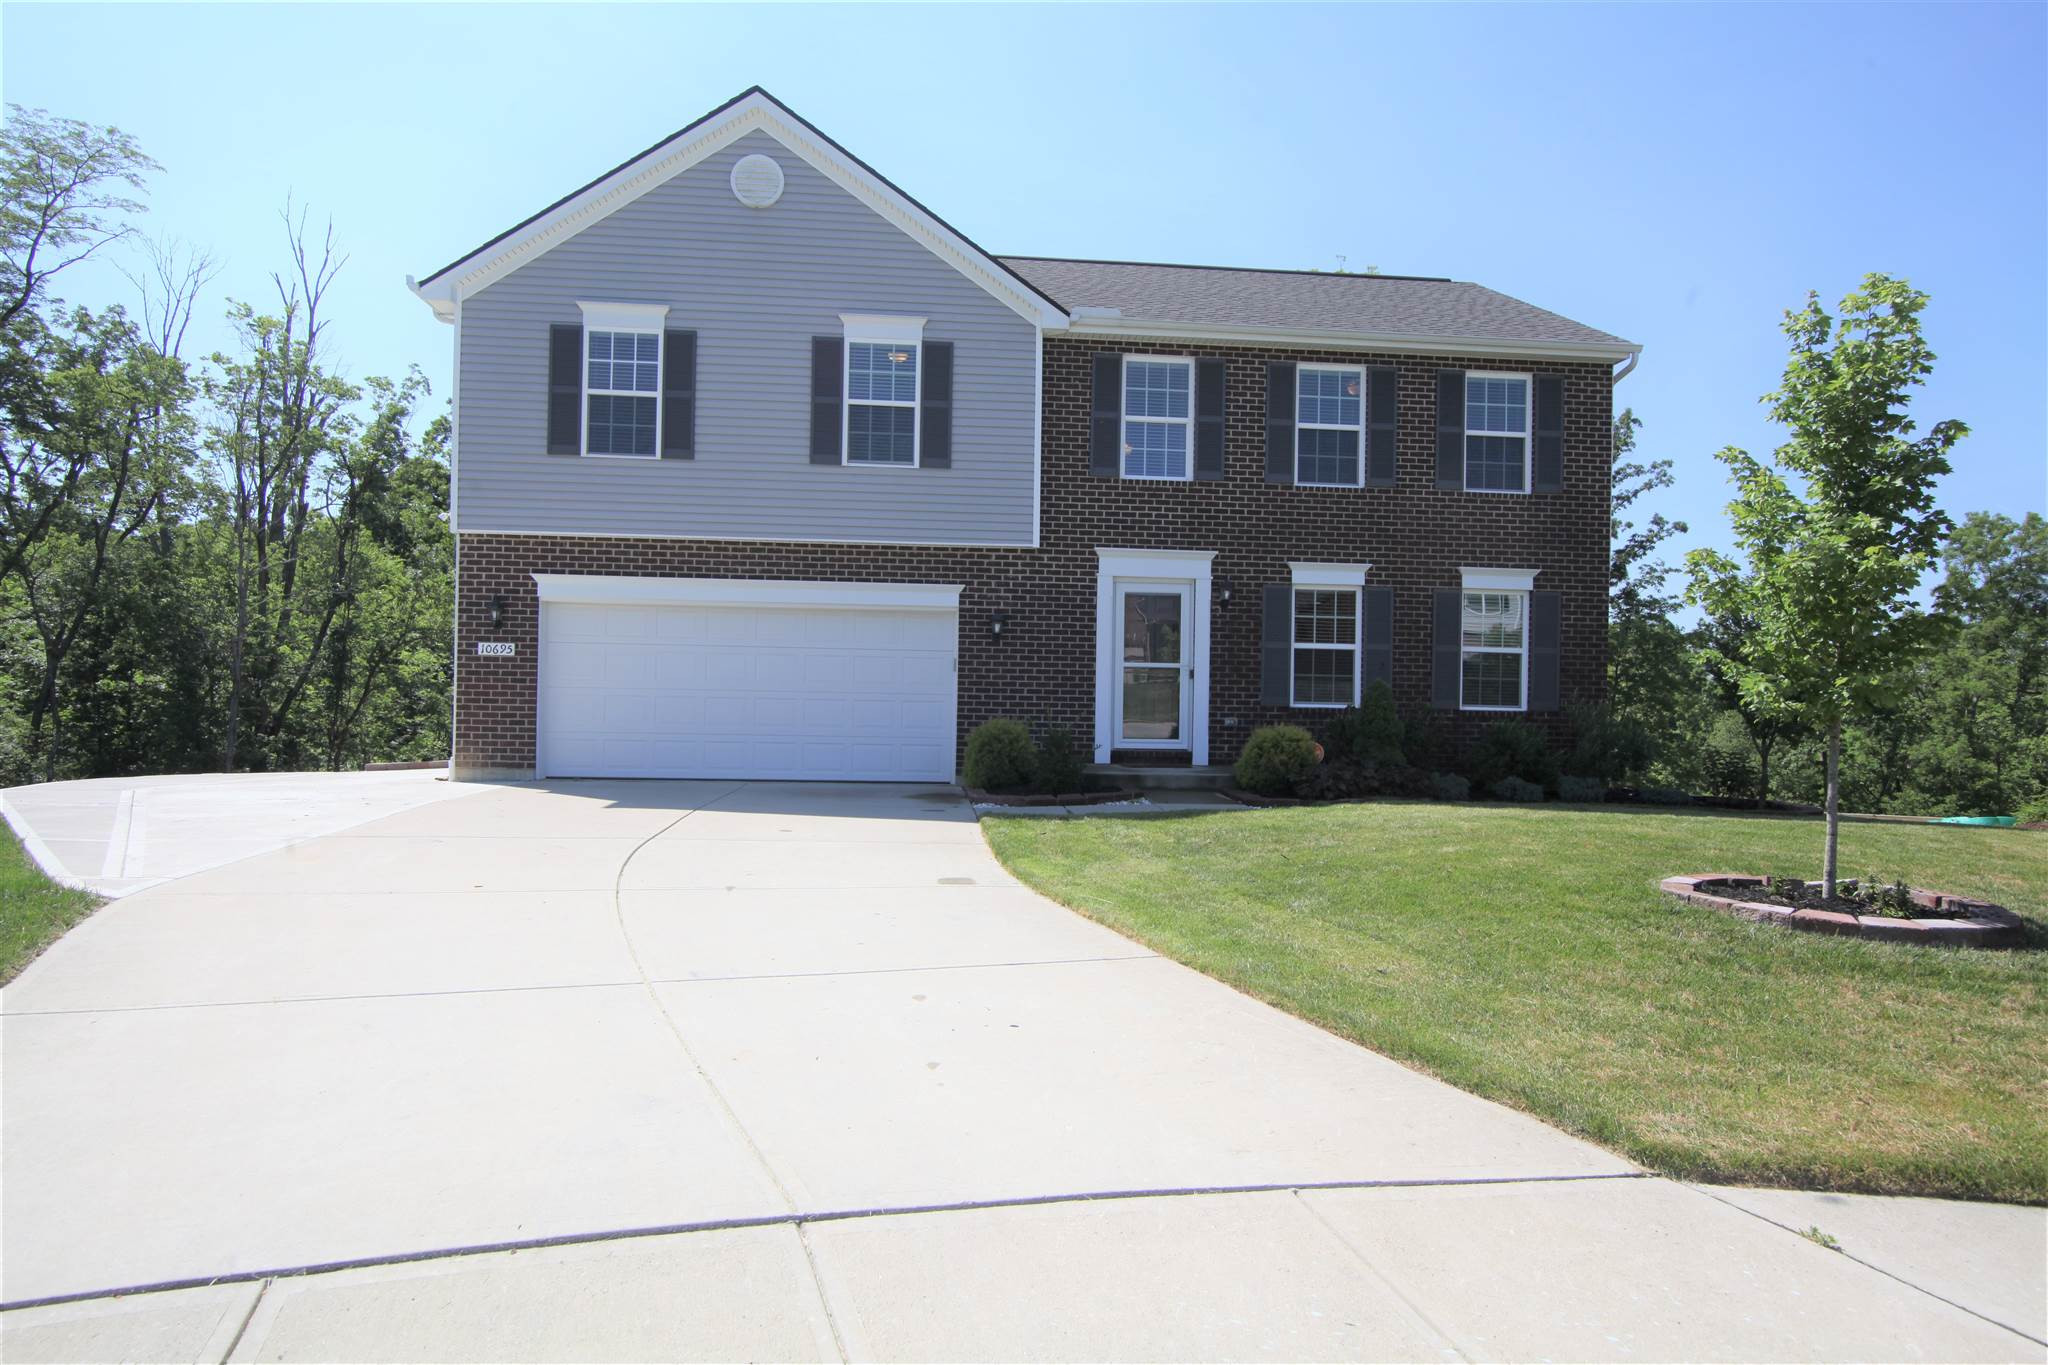 Photo 1 for 10695 Williamswoods Dr Independence, KY 41051